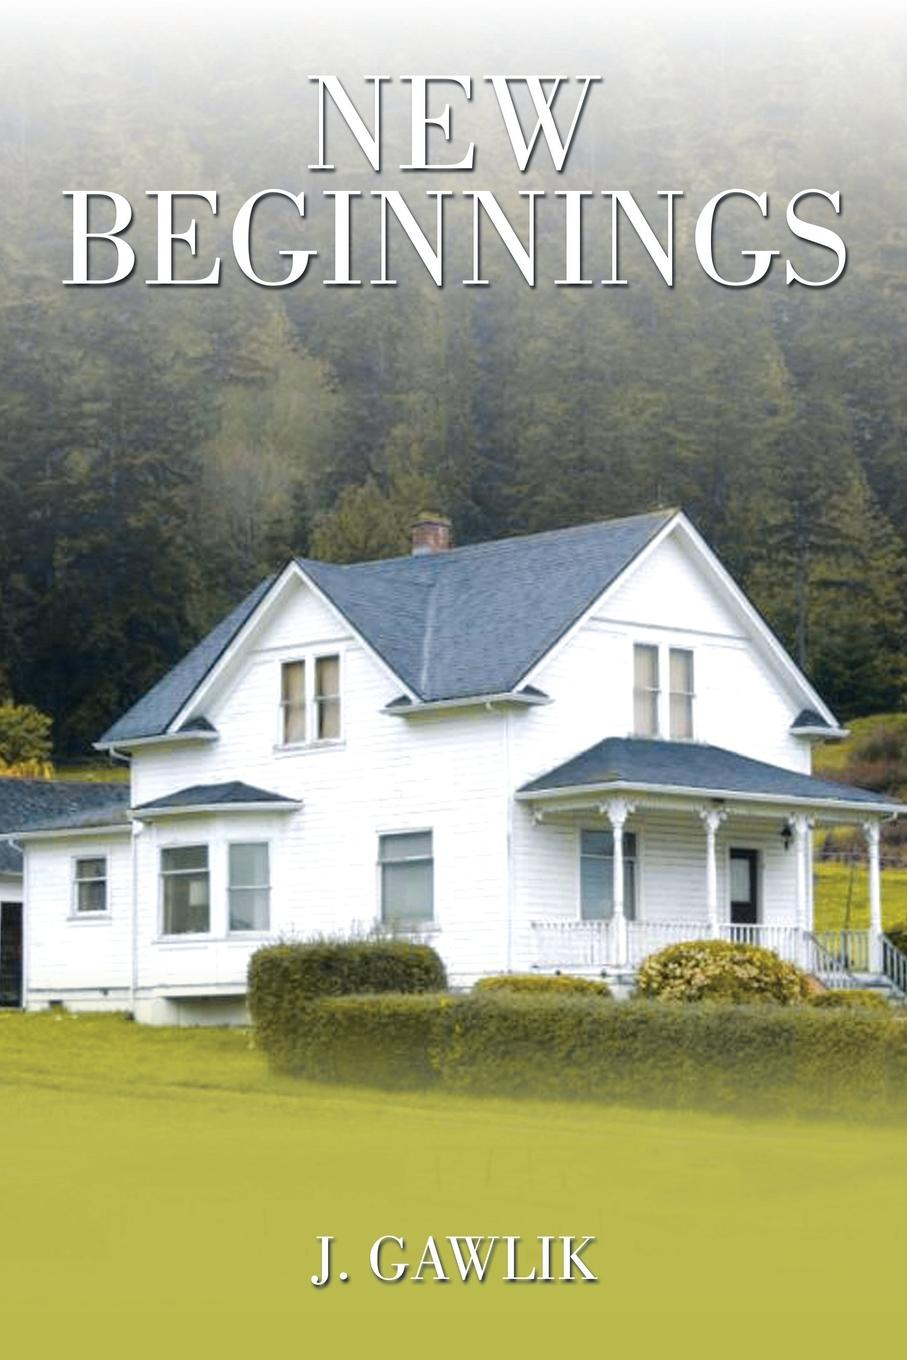 J. Gawlik New Beginnings